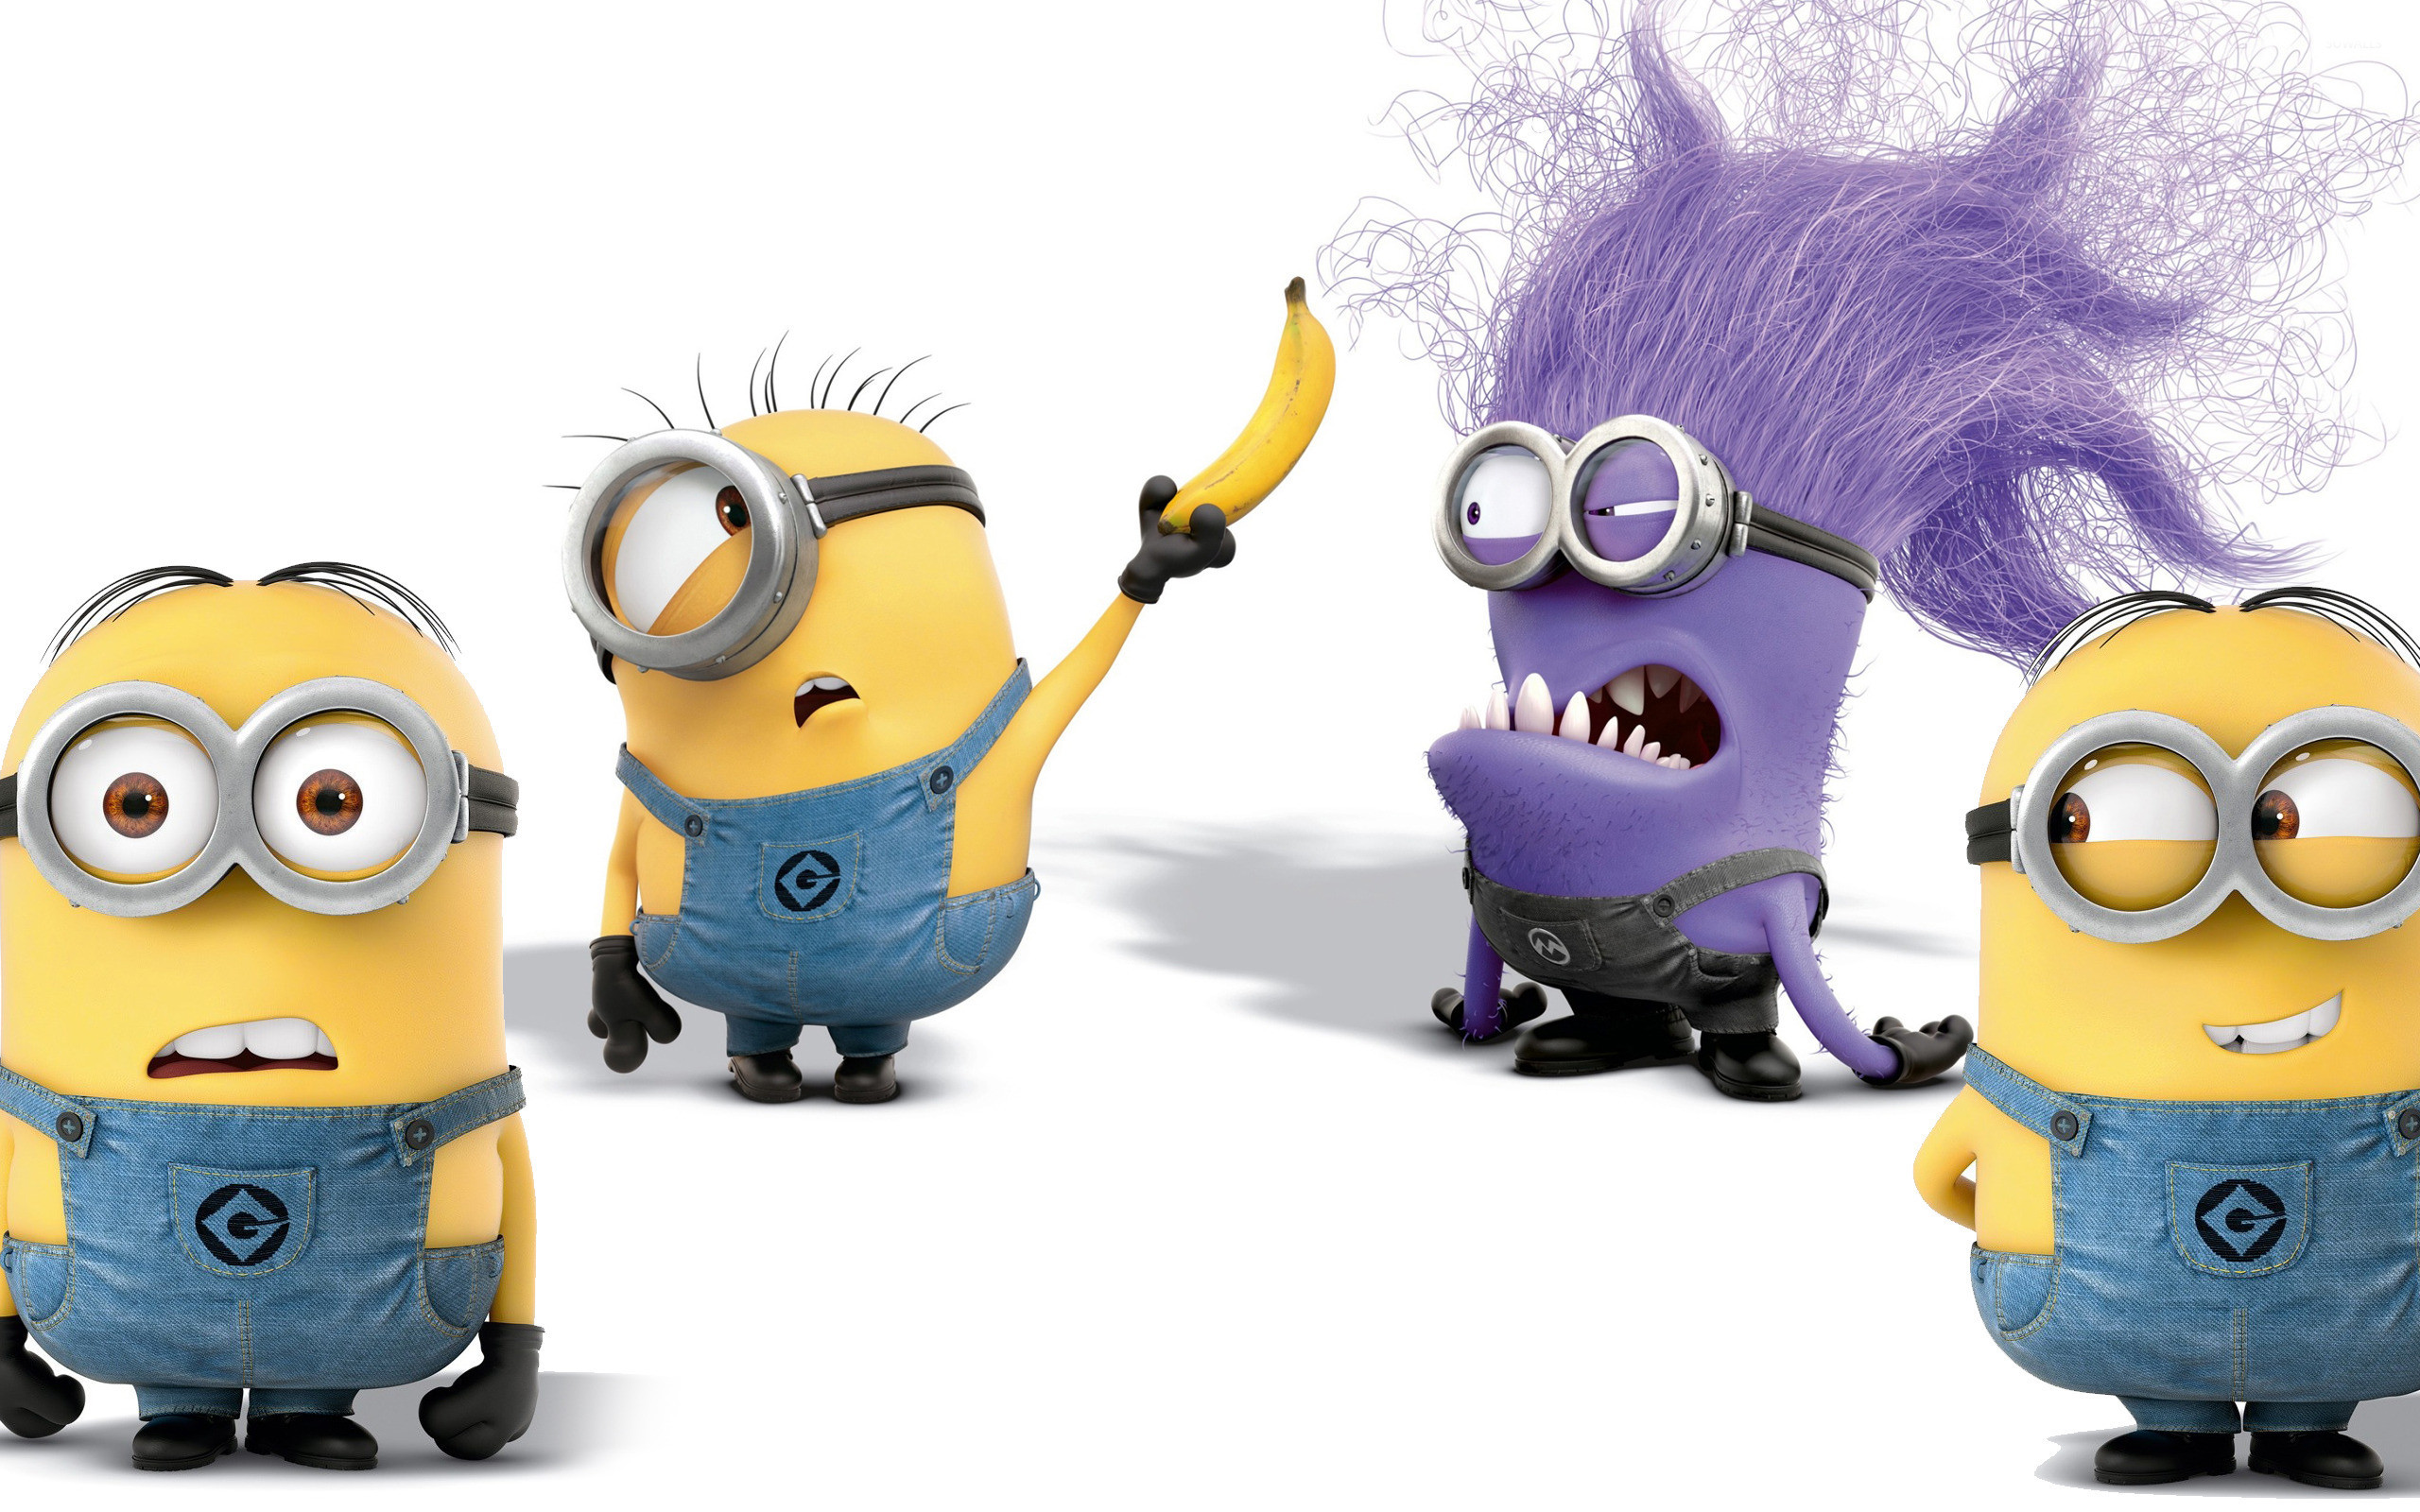 Minion Screensaver Images & Pictures – Becuo